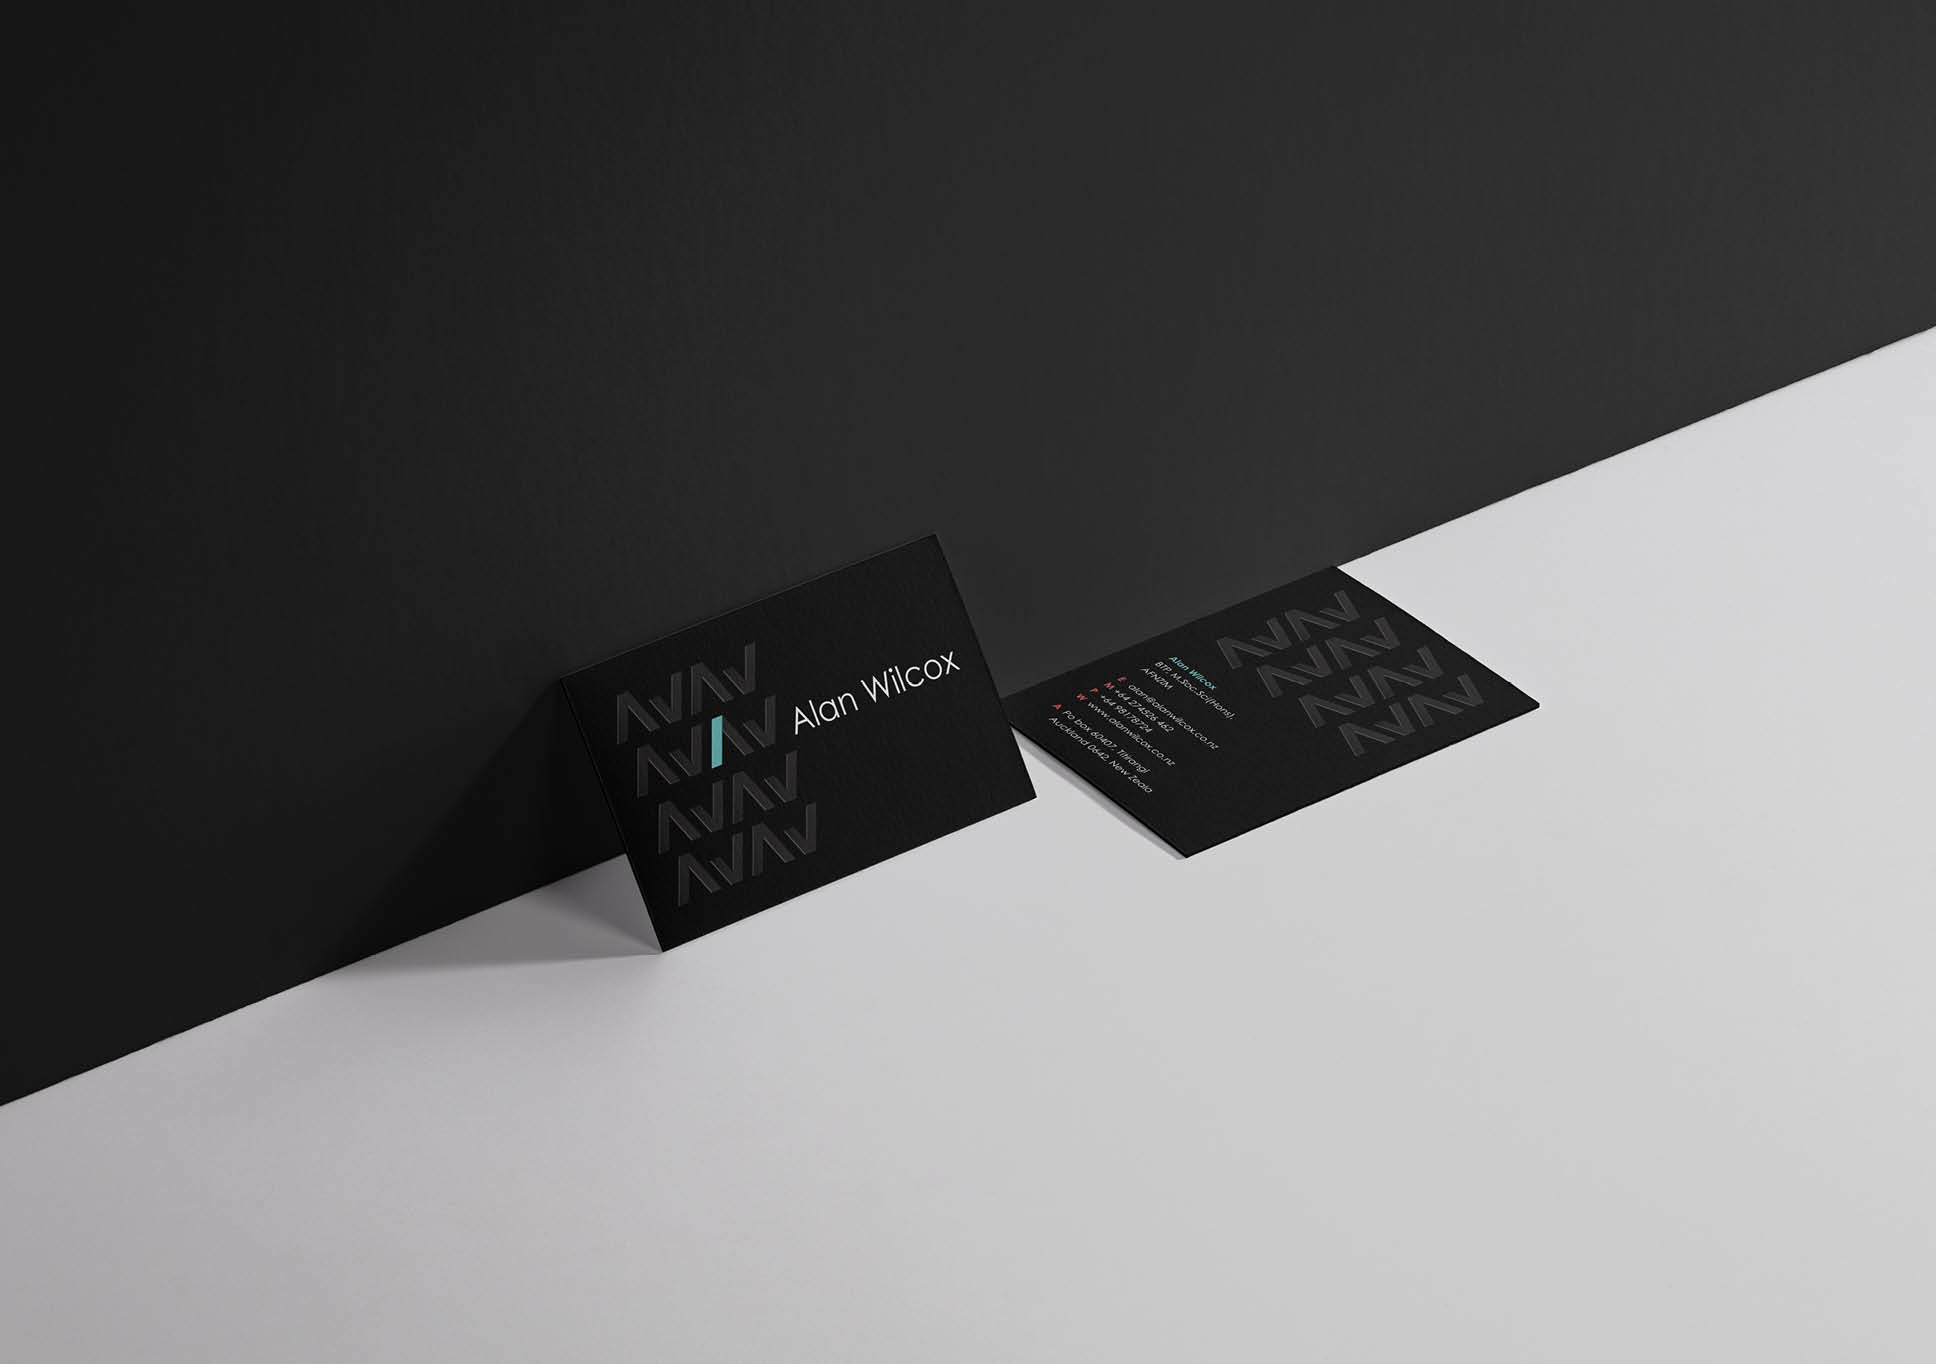 Alan Wilcox business cards